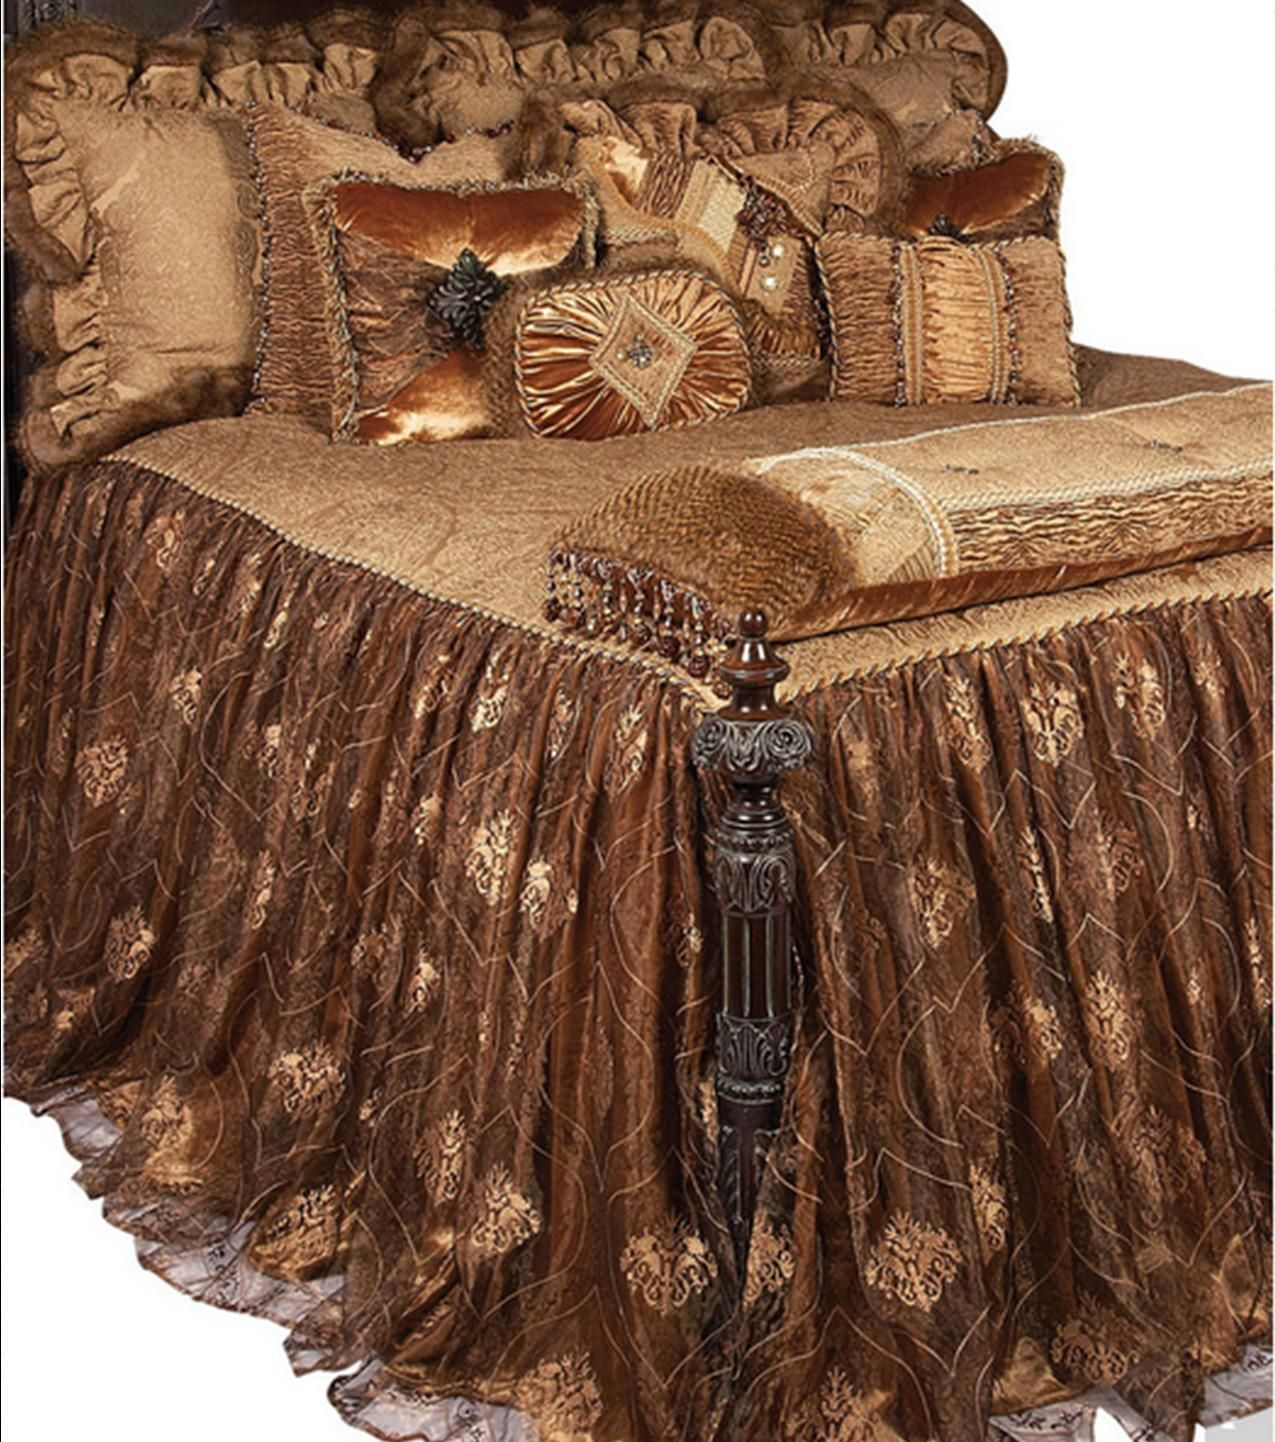 Stunning High End Luxury Bedding Accent Pillows And Accessories By Reilly Chance Collection Champagne Luxury Champagne Bedding In 2019 Bedroom Decor Lux